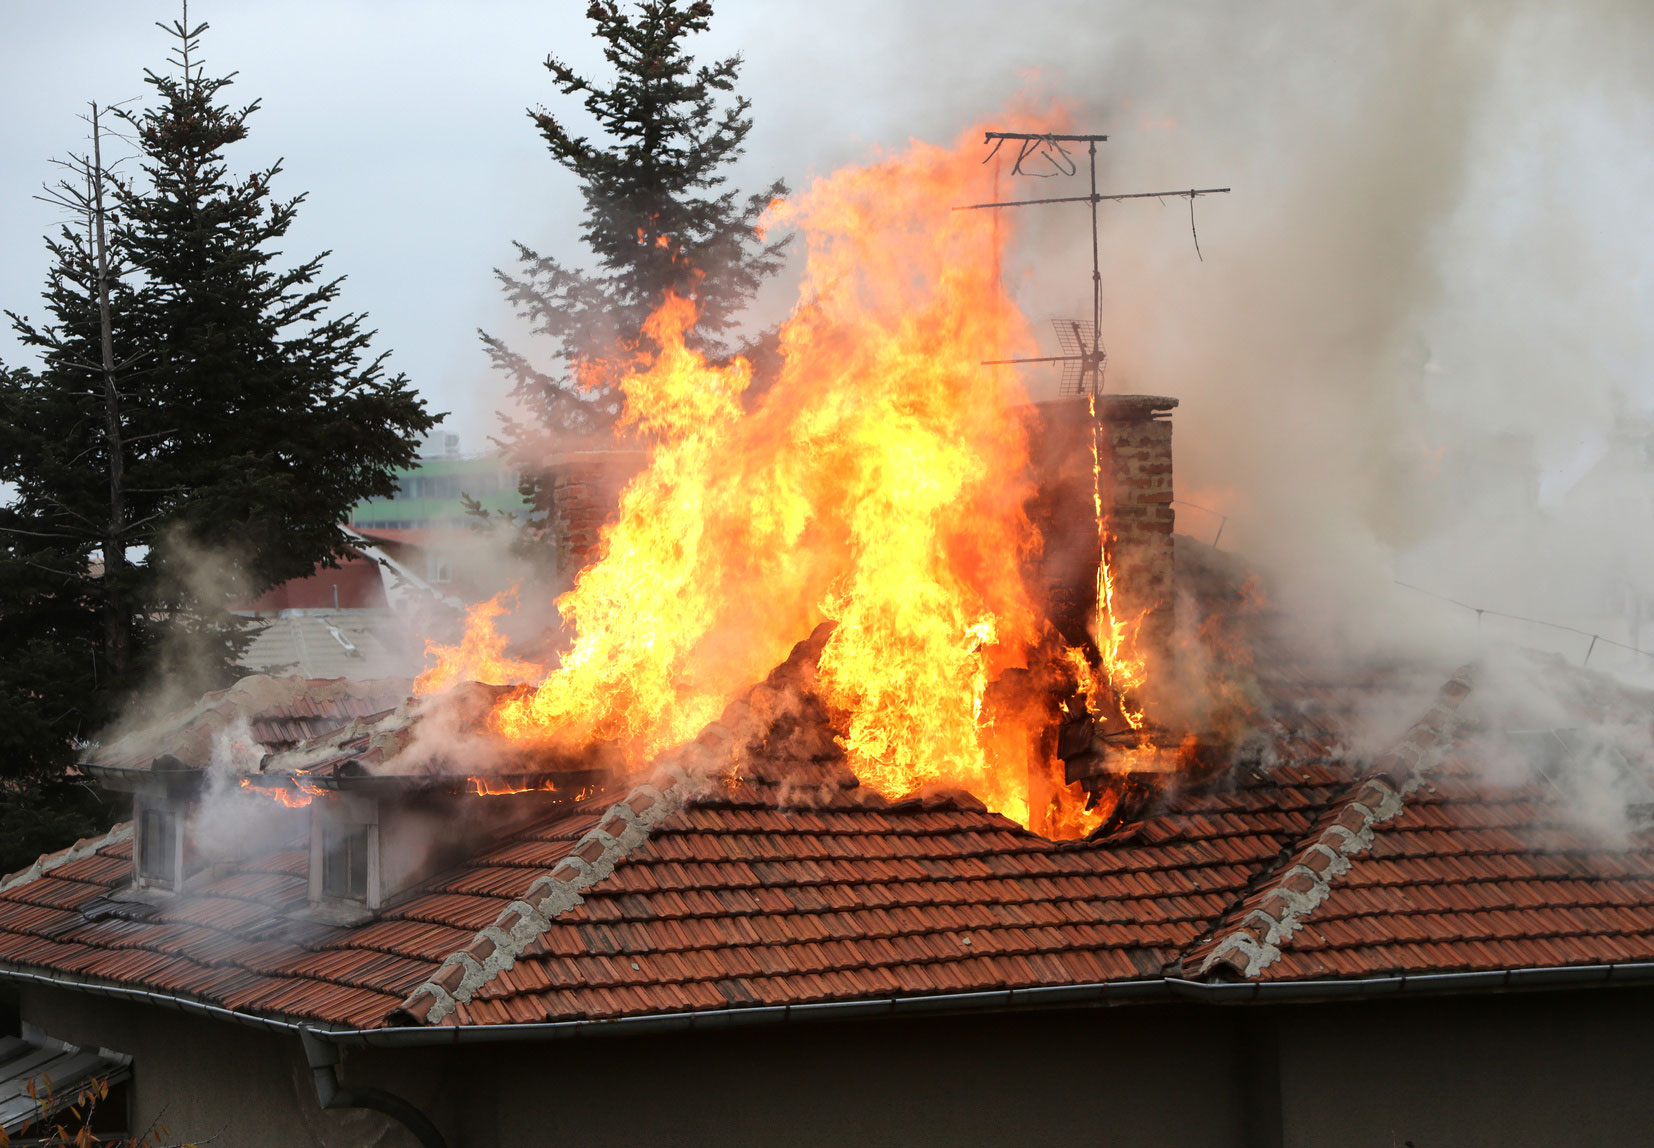 Fires & Home Insurance Los Angeles, CA